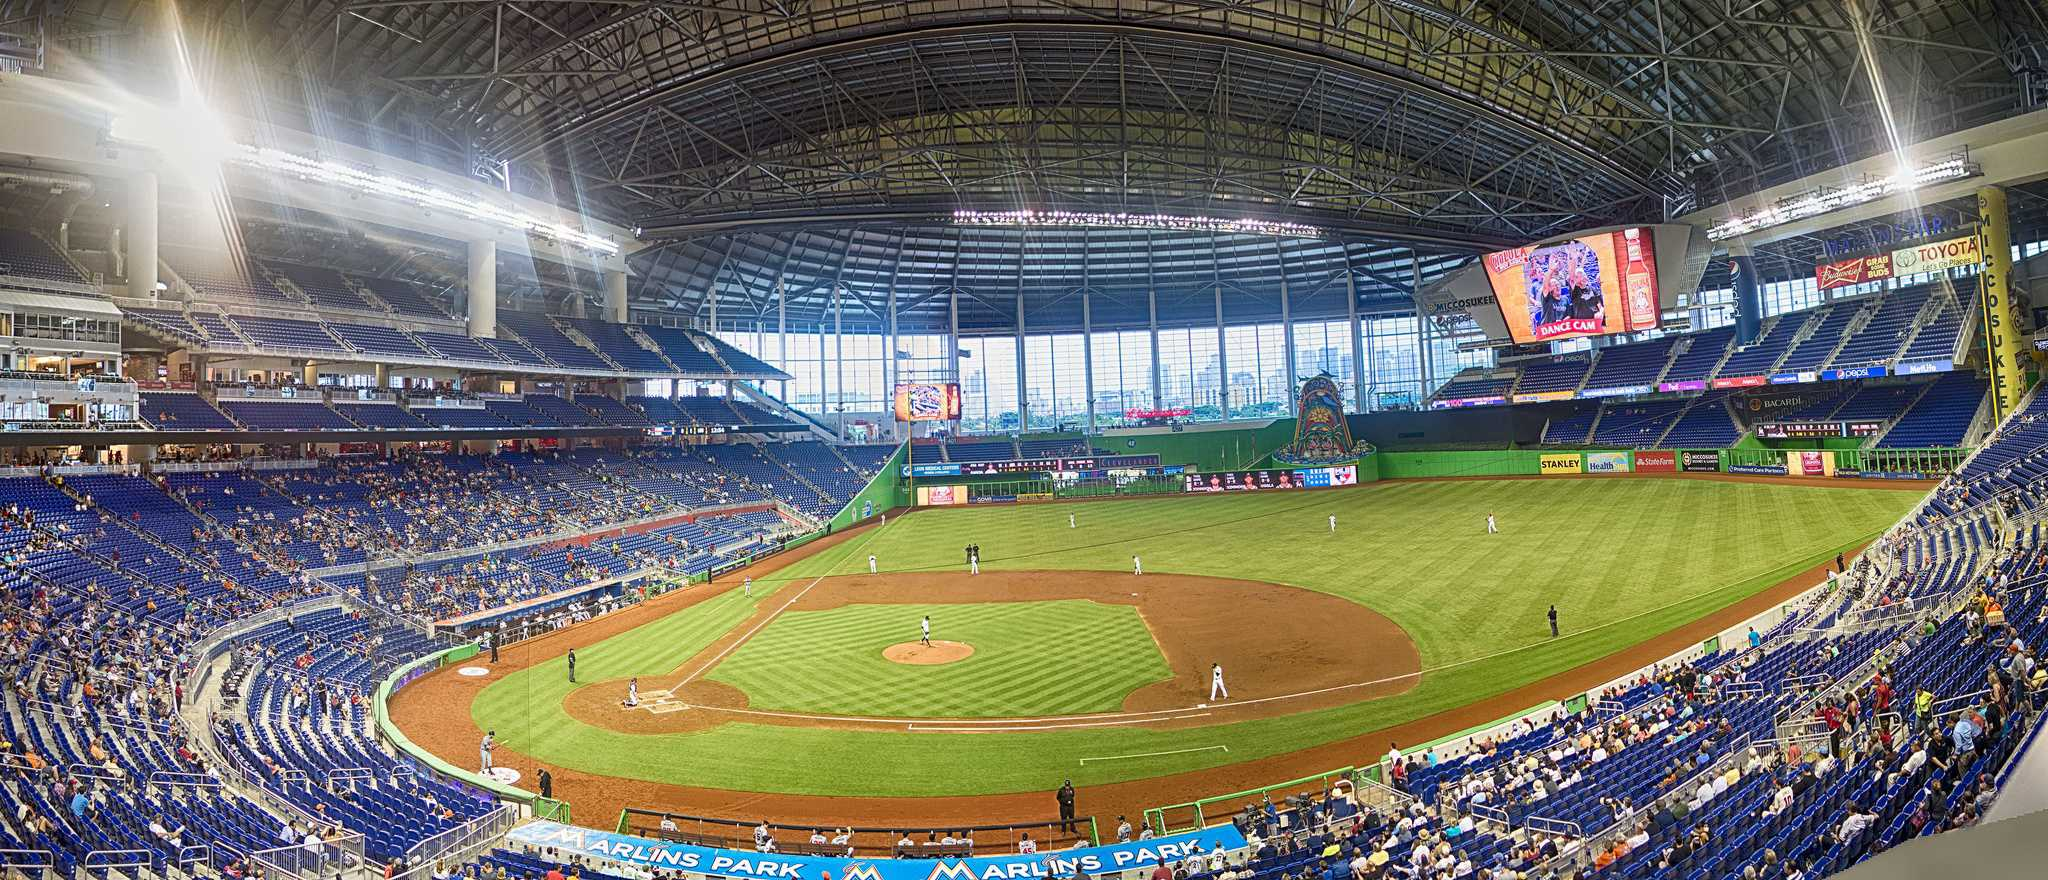 Panorama at Marlins Park